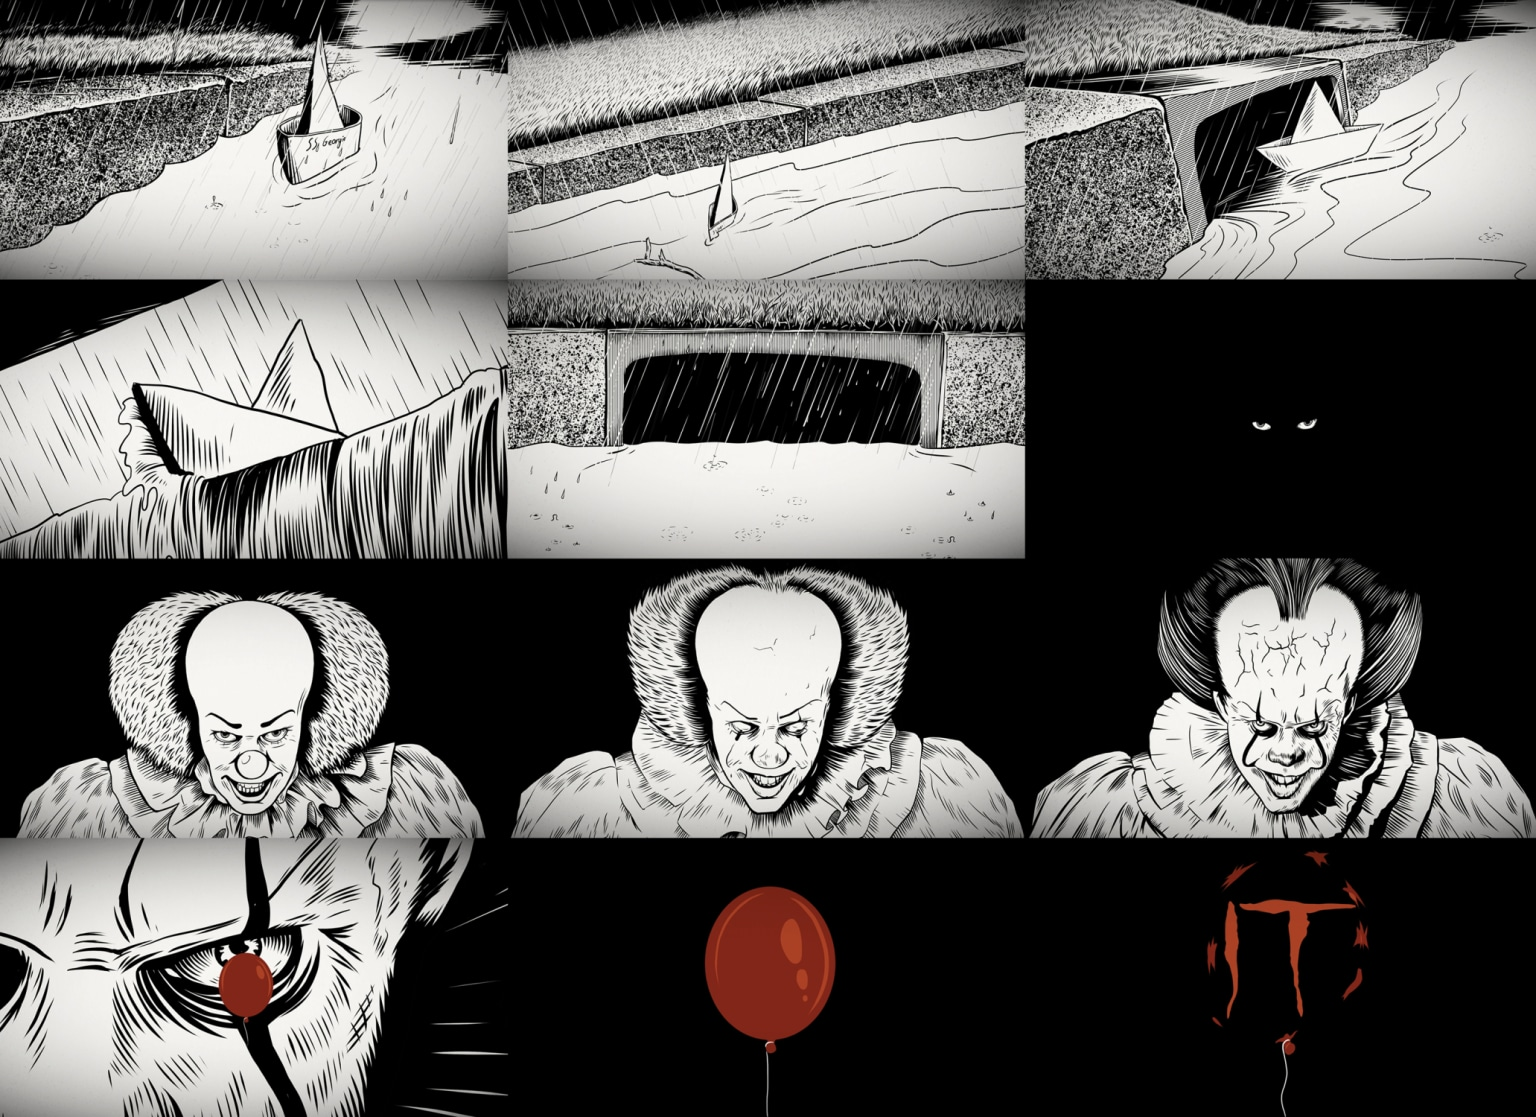 1990 Pennywise vs 2017 Pennywise | IT Animated